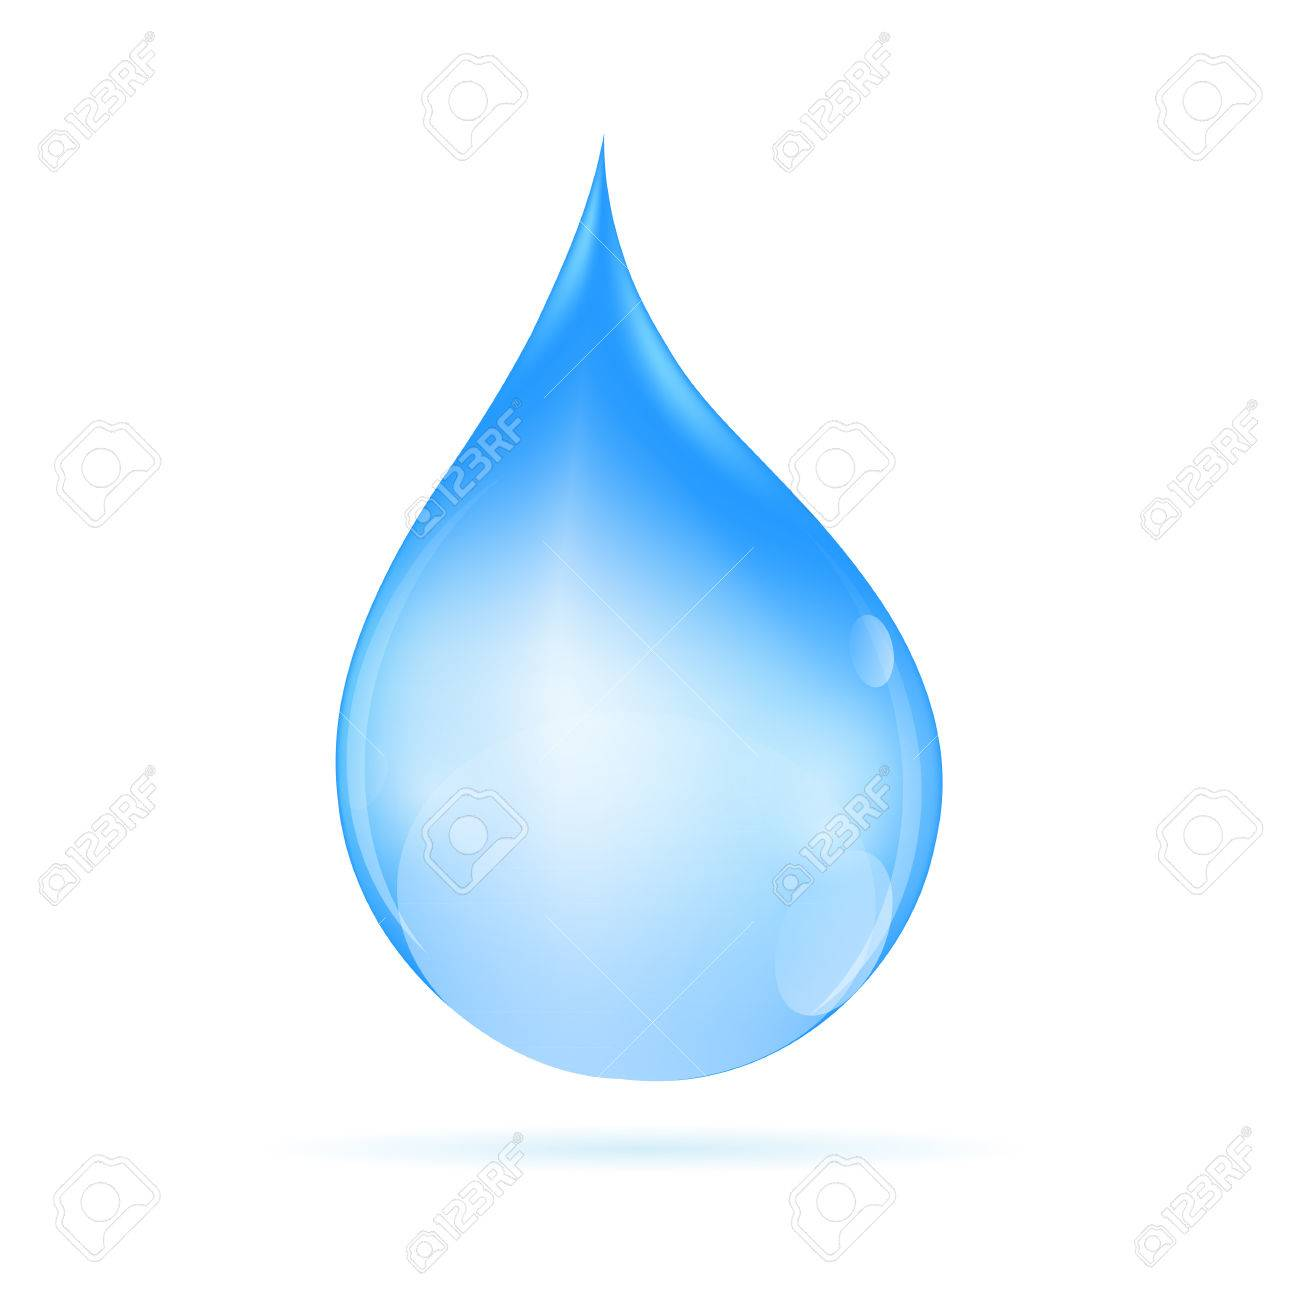 water drop vector illustration royalty free cliparts vectors and rh 123rf com water drop vector free water drops vector images